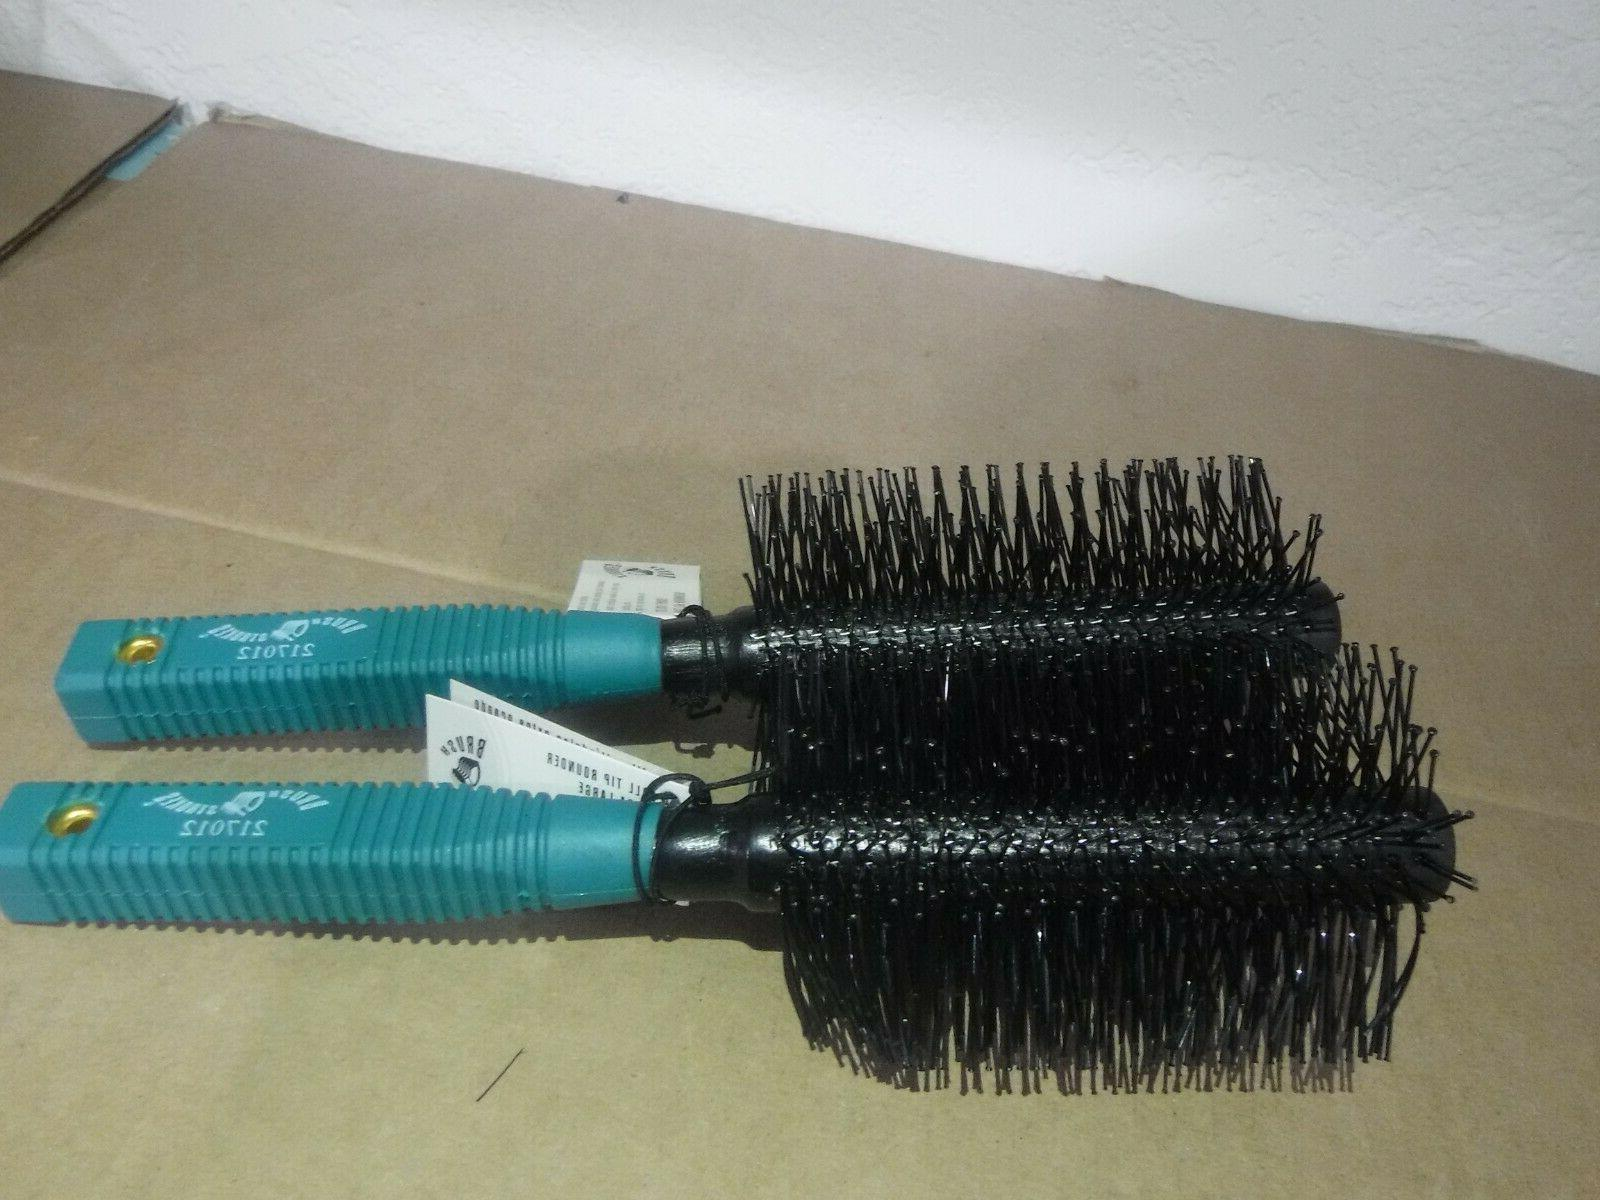 BRUSH STROKES BALL TIP EXTRA LARGE 217012